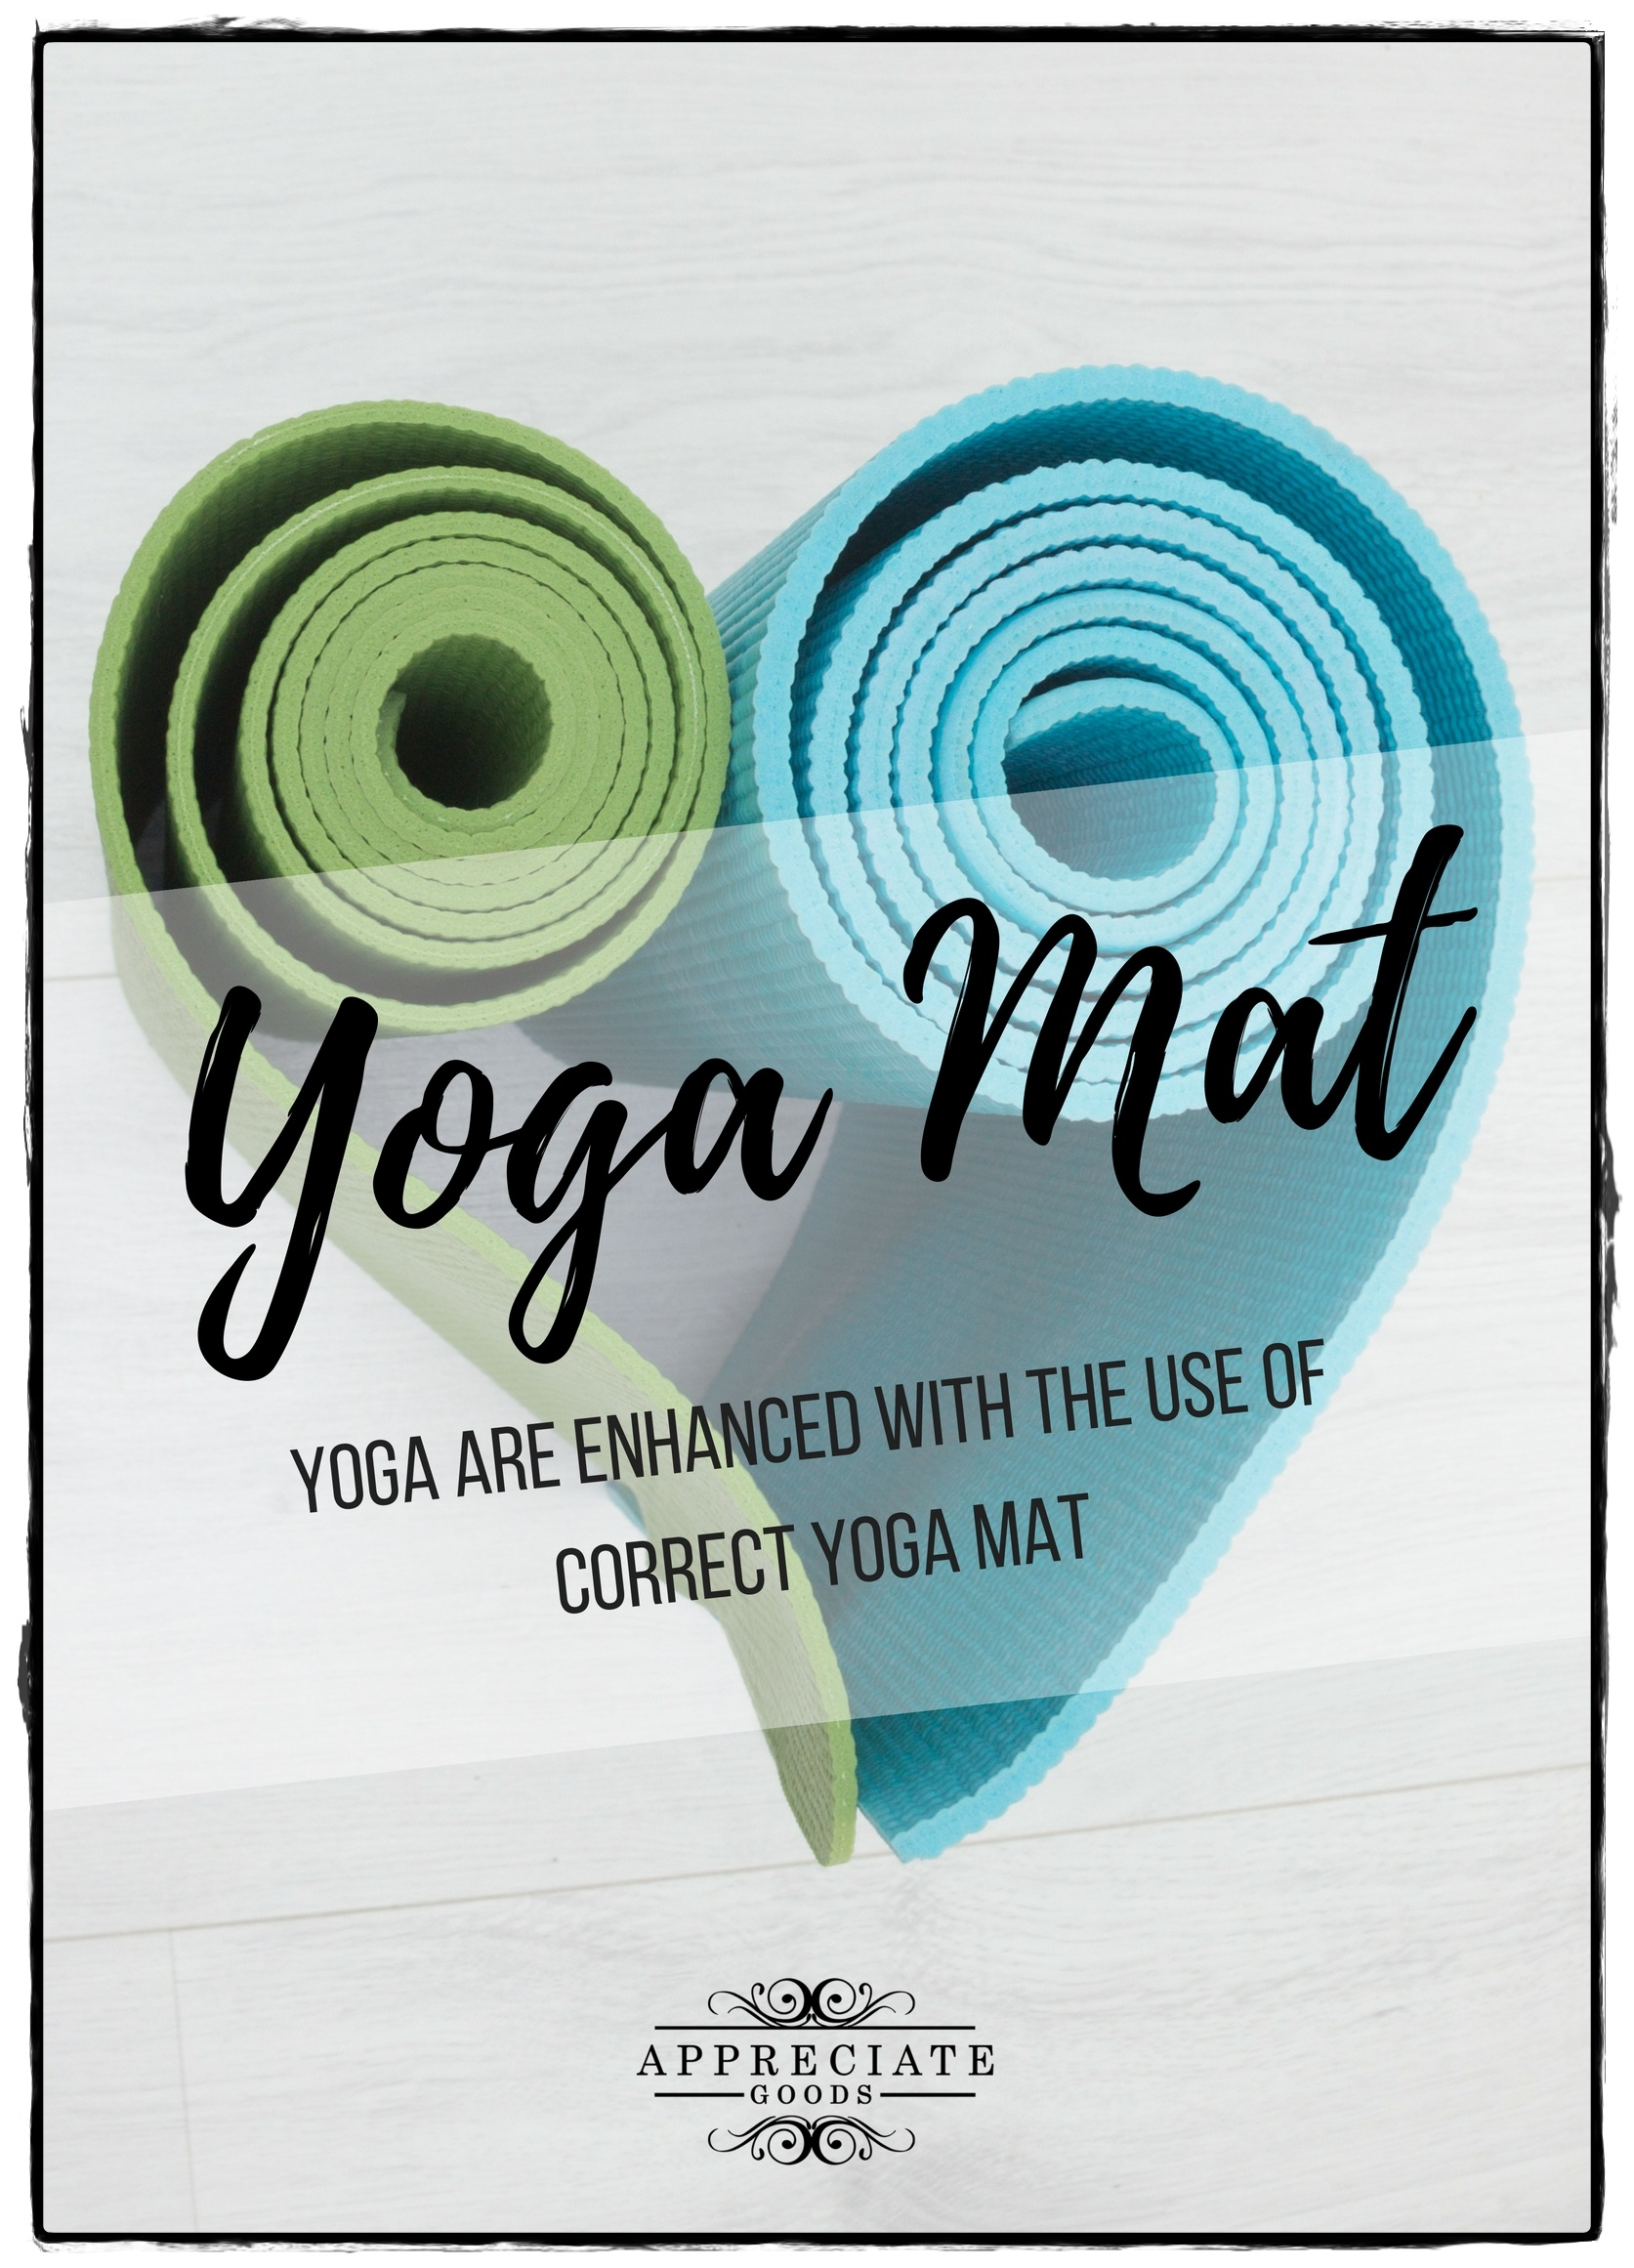 6 Best Yoga Mats For Doing Different Kinds Of Yoga